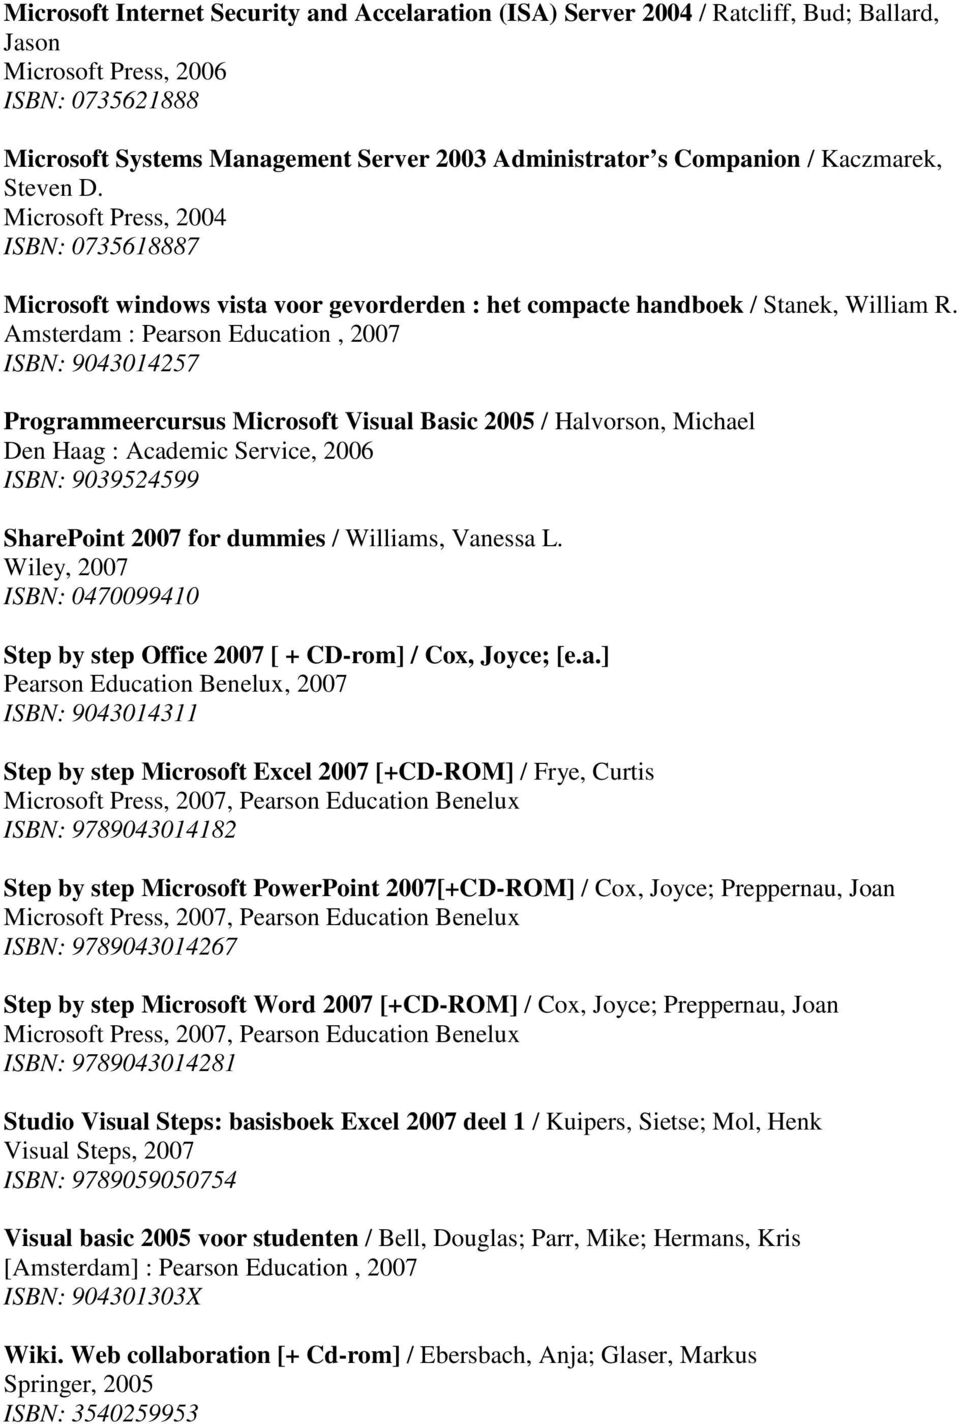 Amsterdam : Pearson Education, 2007 ISBN: 9043014257 Programmeercursus Microsoft Visual Basic 2005 / Halvorson, Michael Den Haag : Academic Service, 2006 ISBN: 9039524599 SharePoint 2007 for dummies